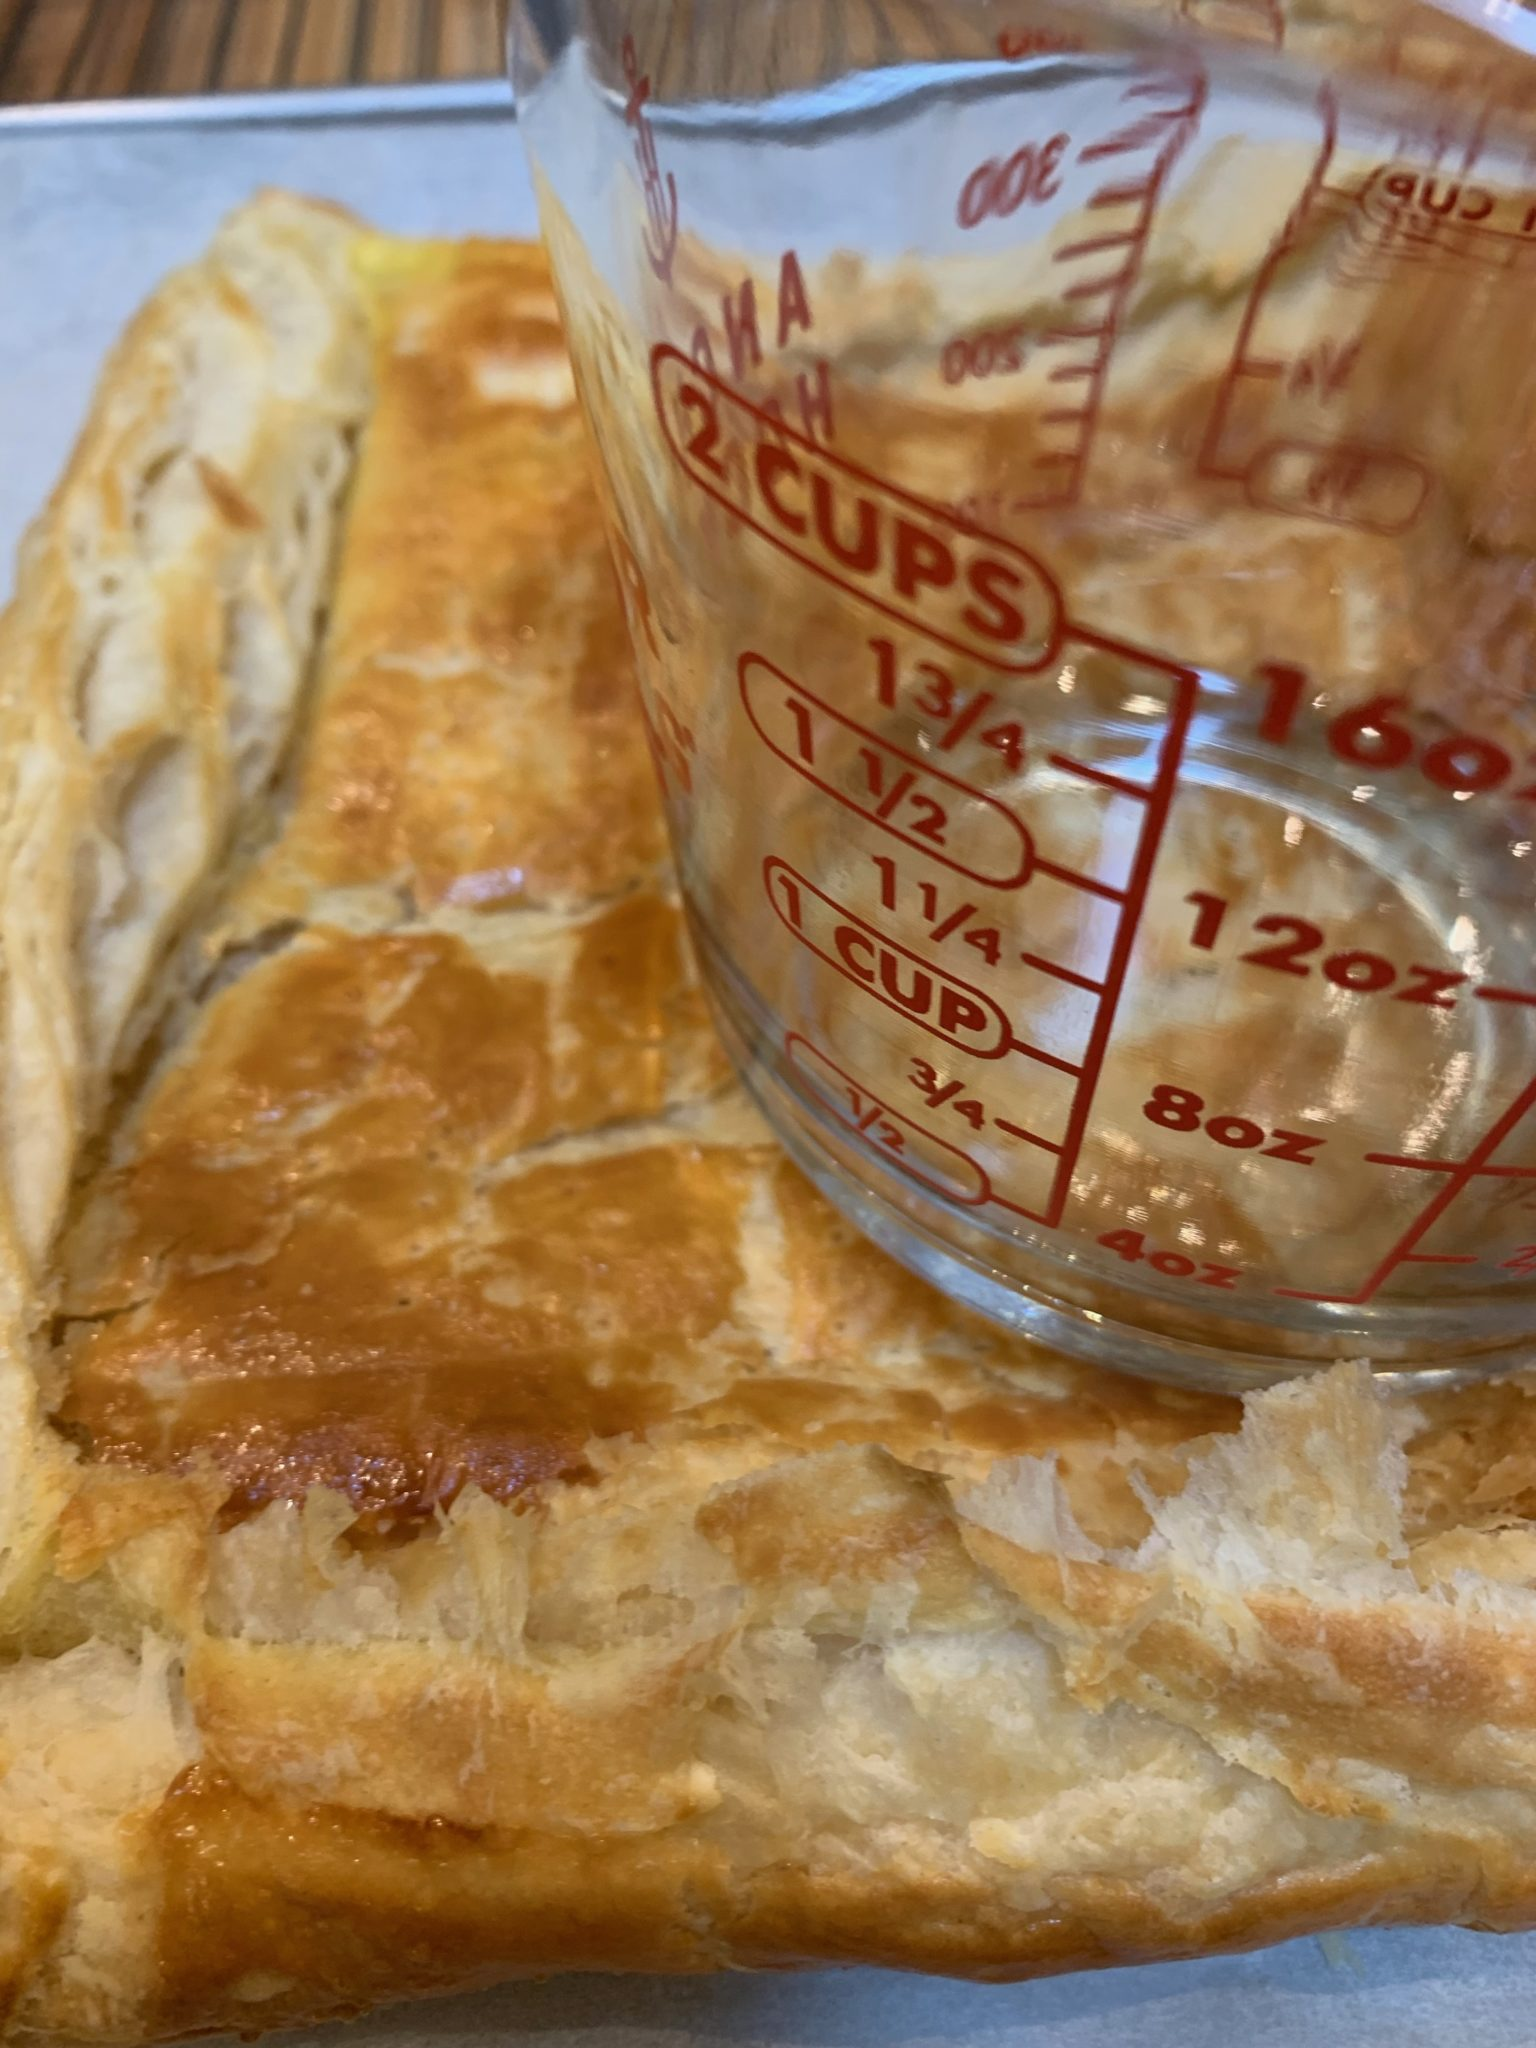 Falltening the center of the puff pastry tart with a measuring cup